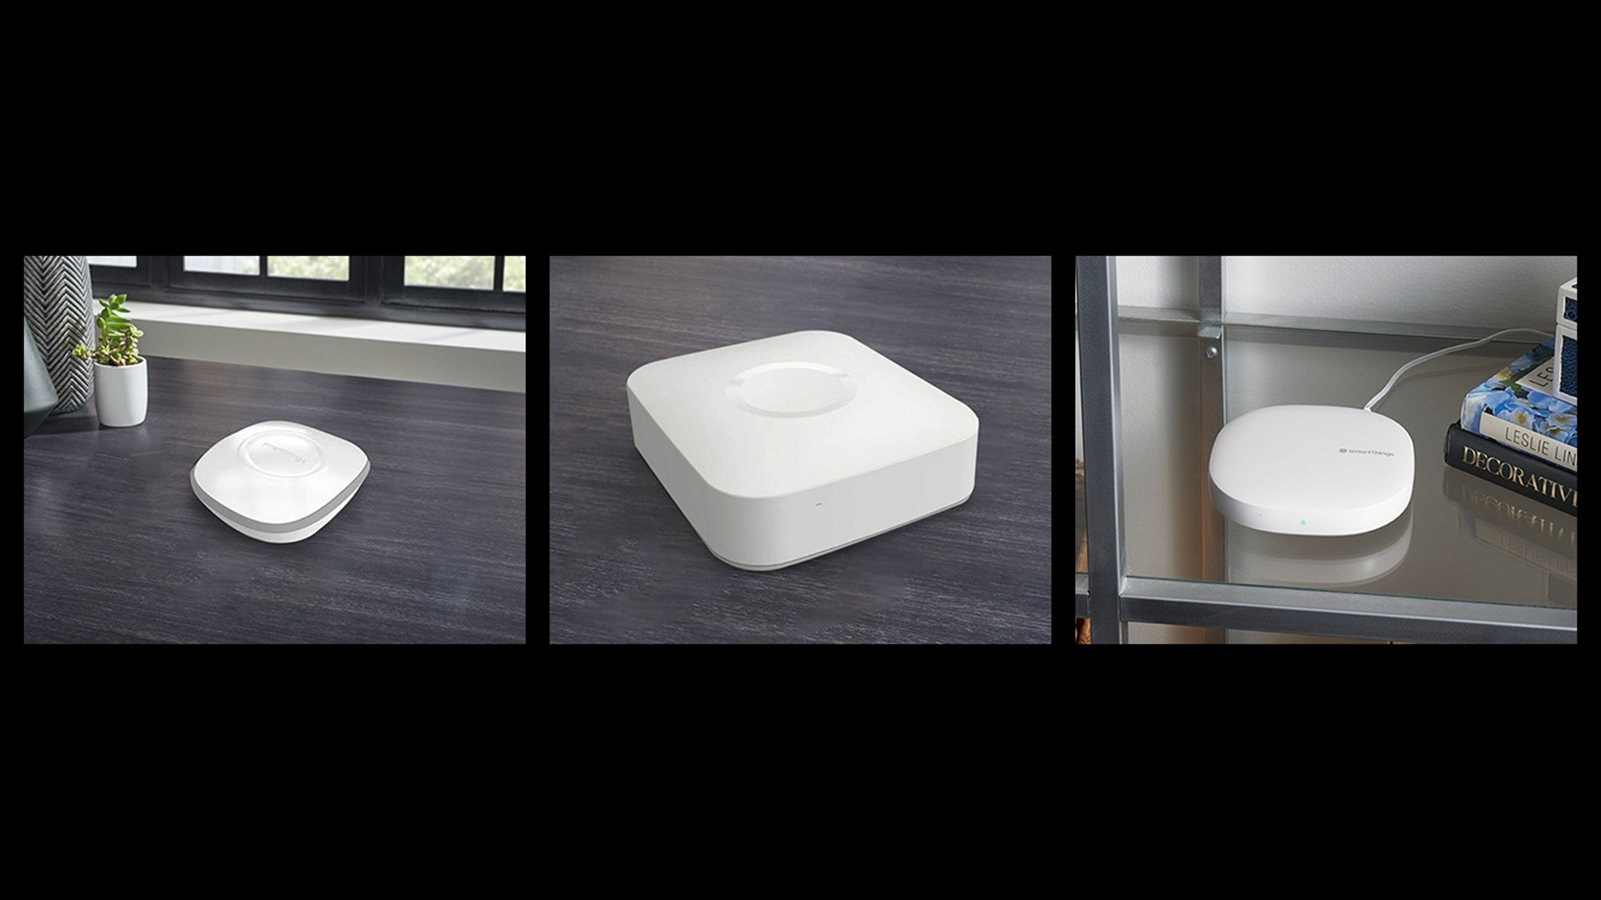 Three Samsung hubs, a first generation on left, second generation in middle, third generation on right.